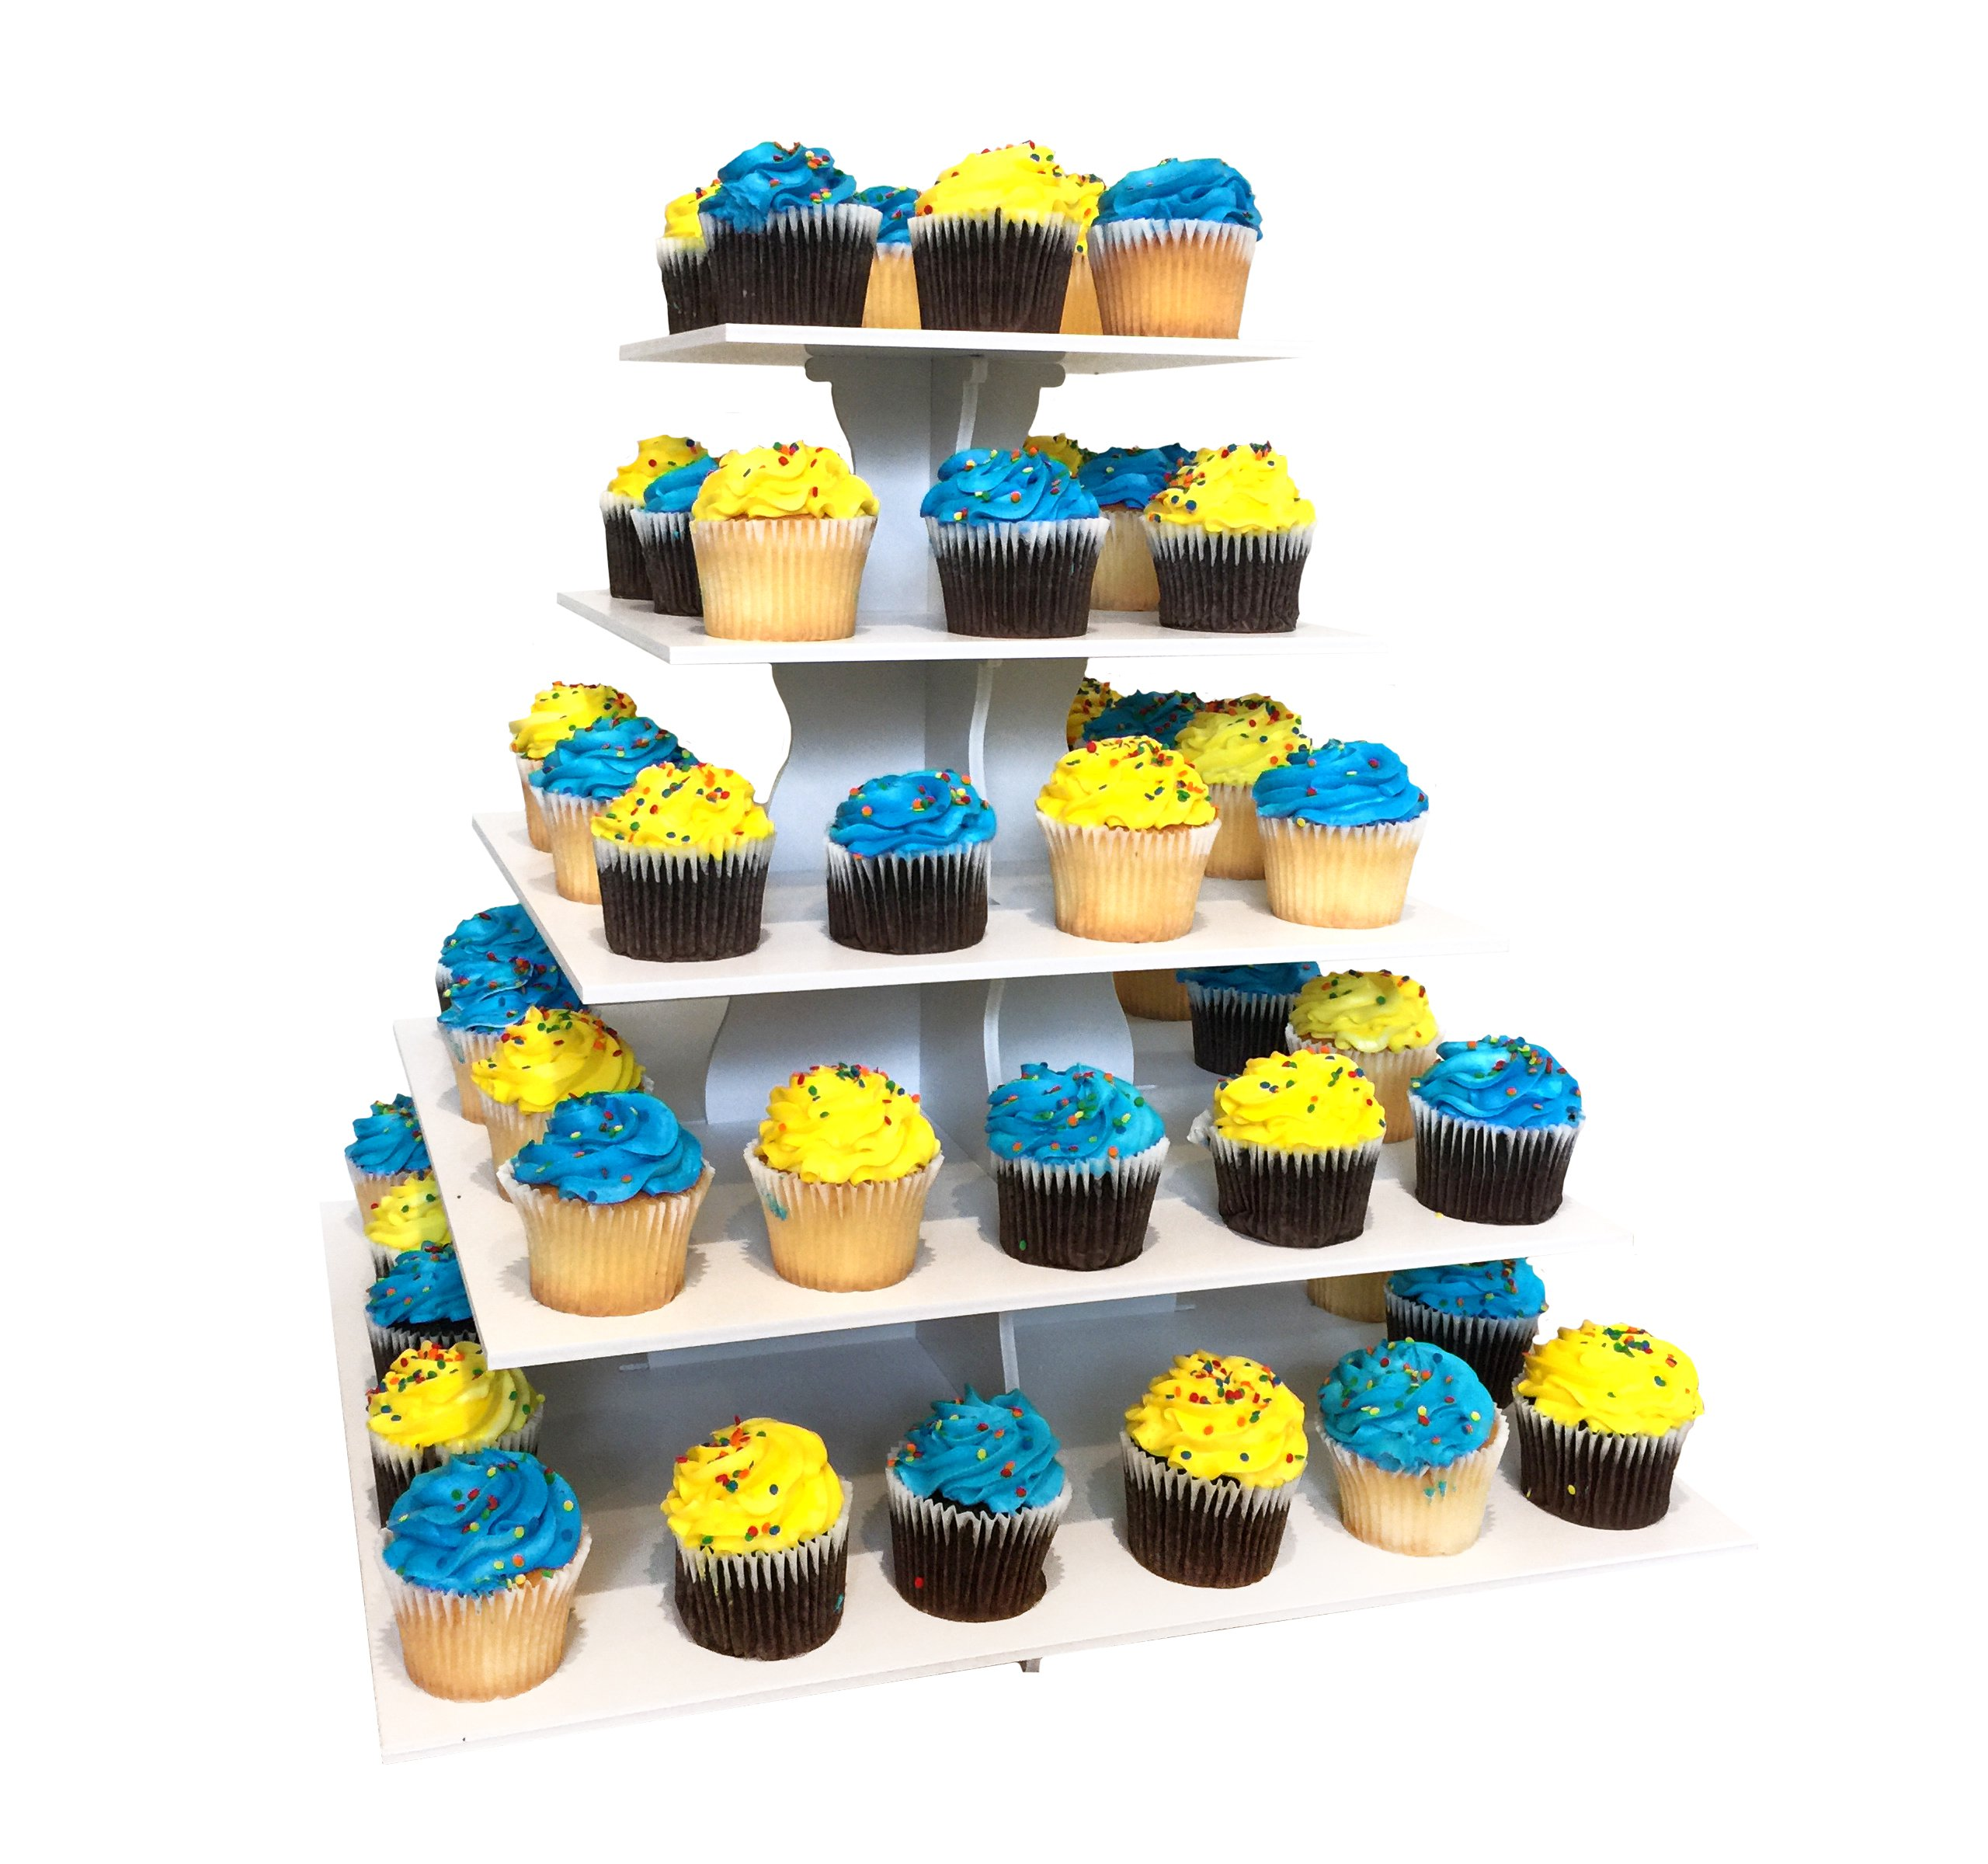 The Smart Baker NEW Quick and Easy 2 in 1 Square Cupcake Tower Stand - Reusable as 3 or 5 Tier Cupcake Stand - Holds 100+ Cupcakes